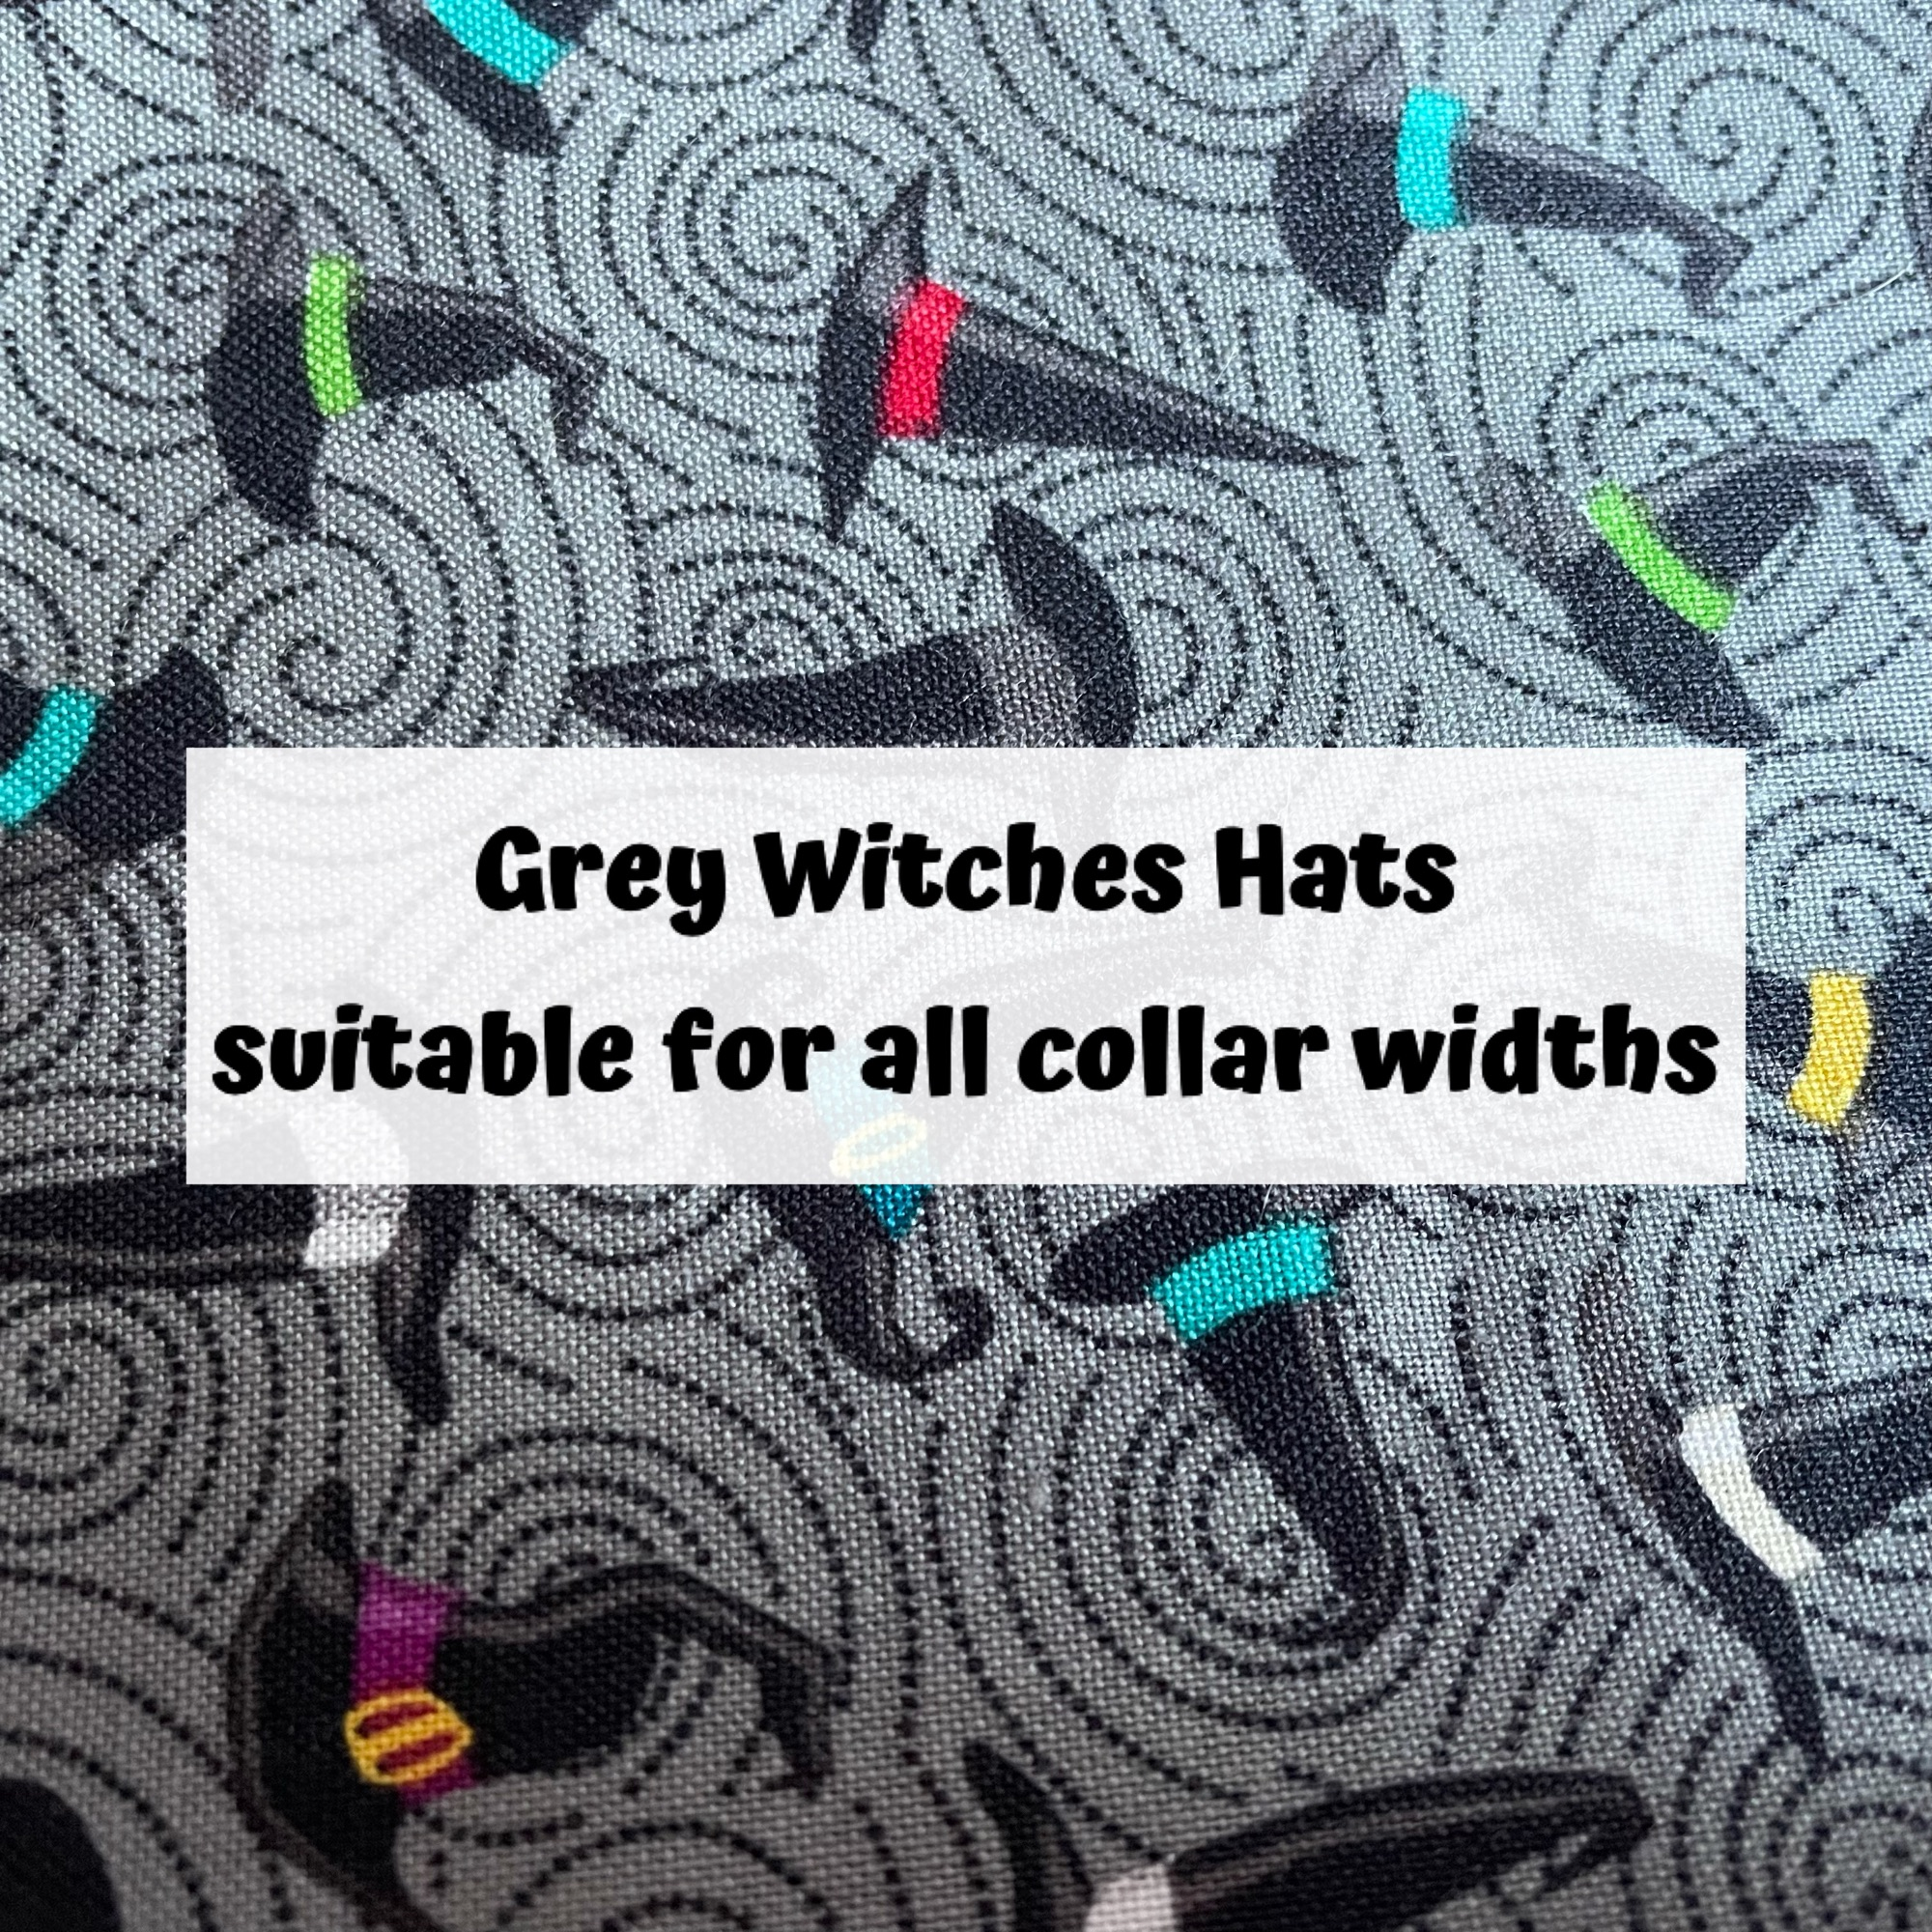 Grey Witches Hats